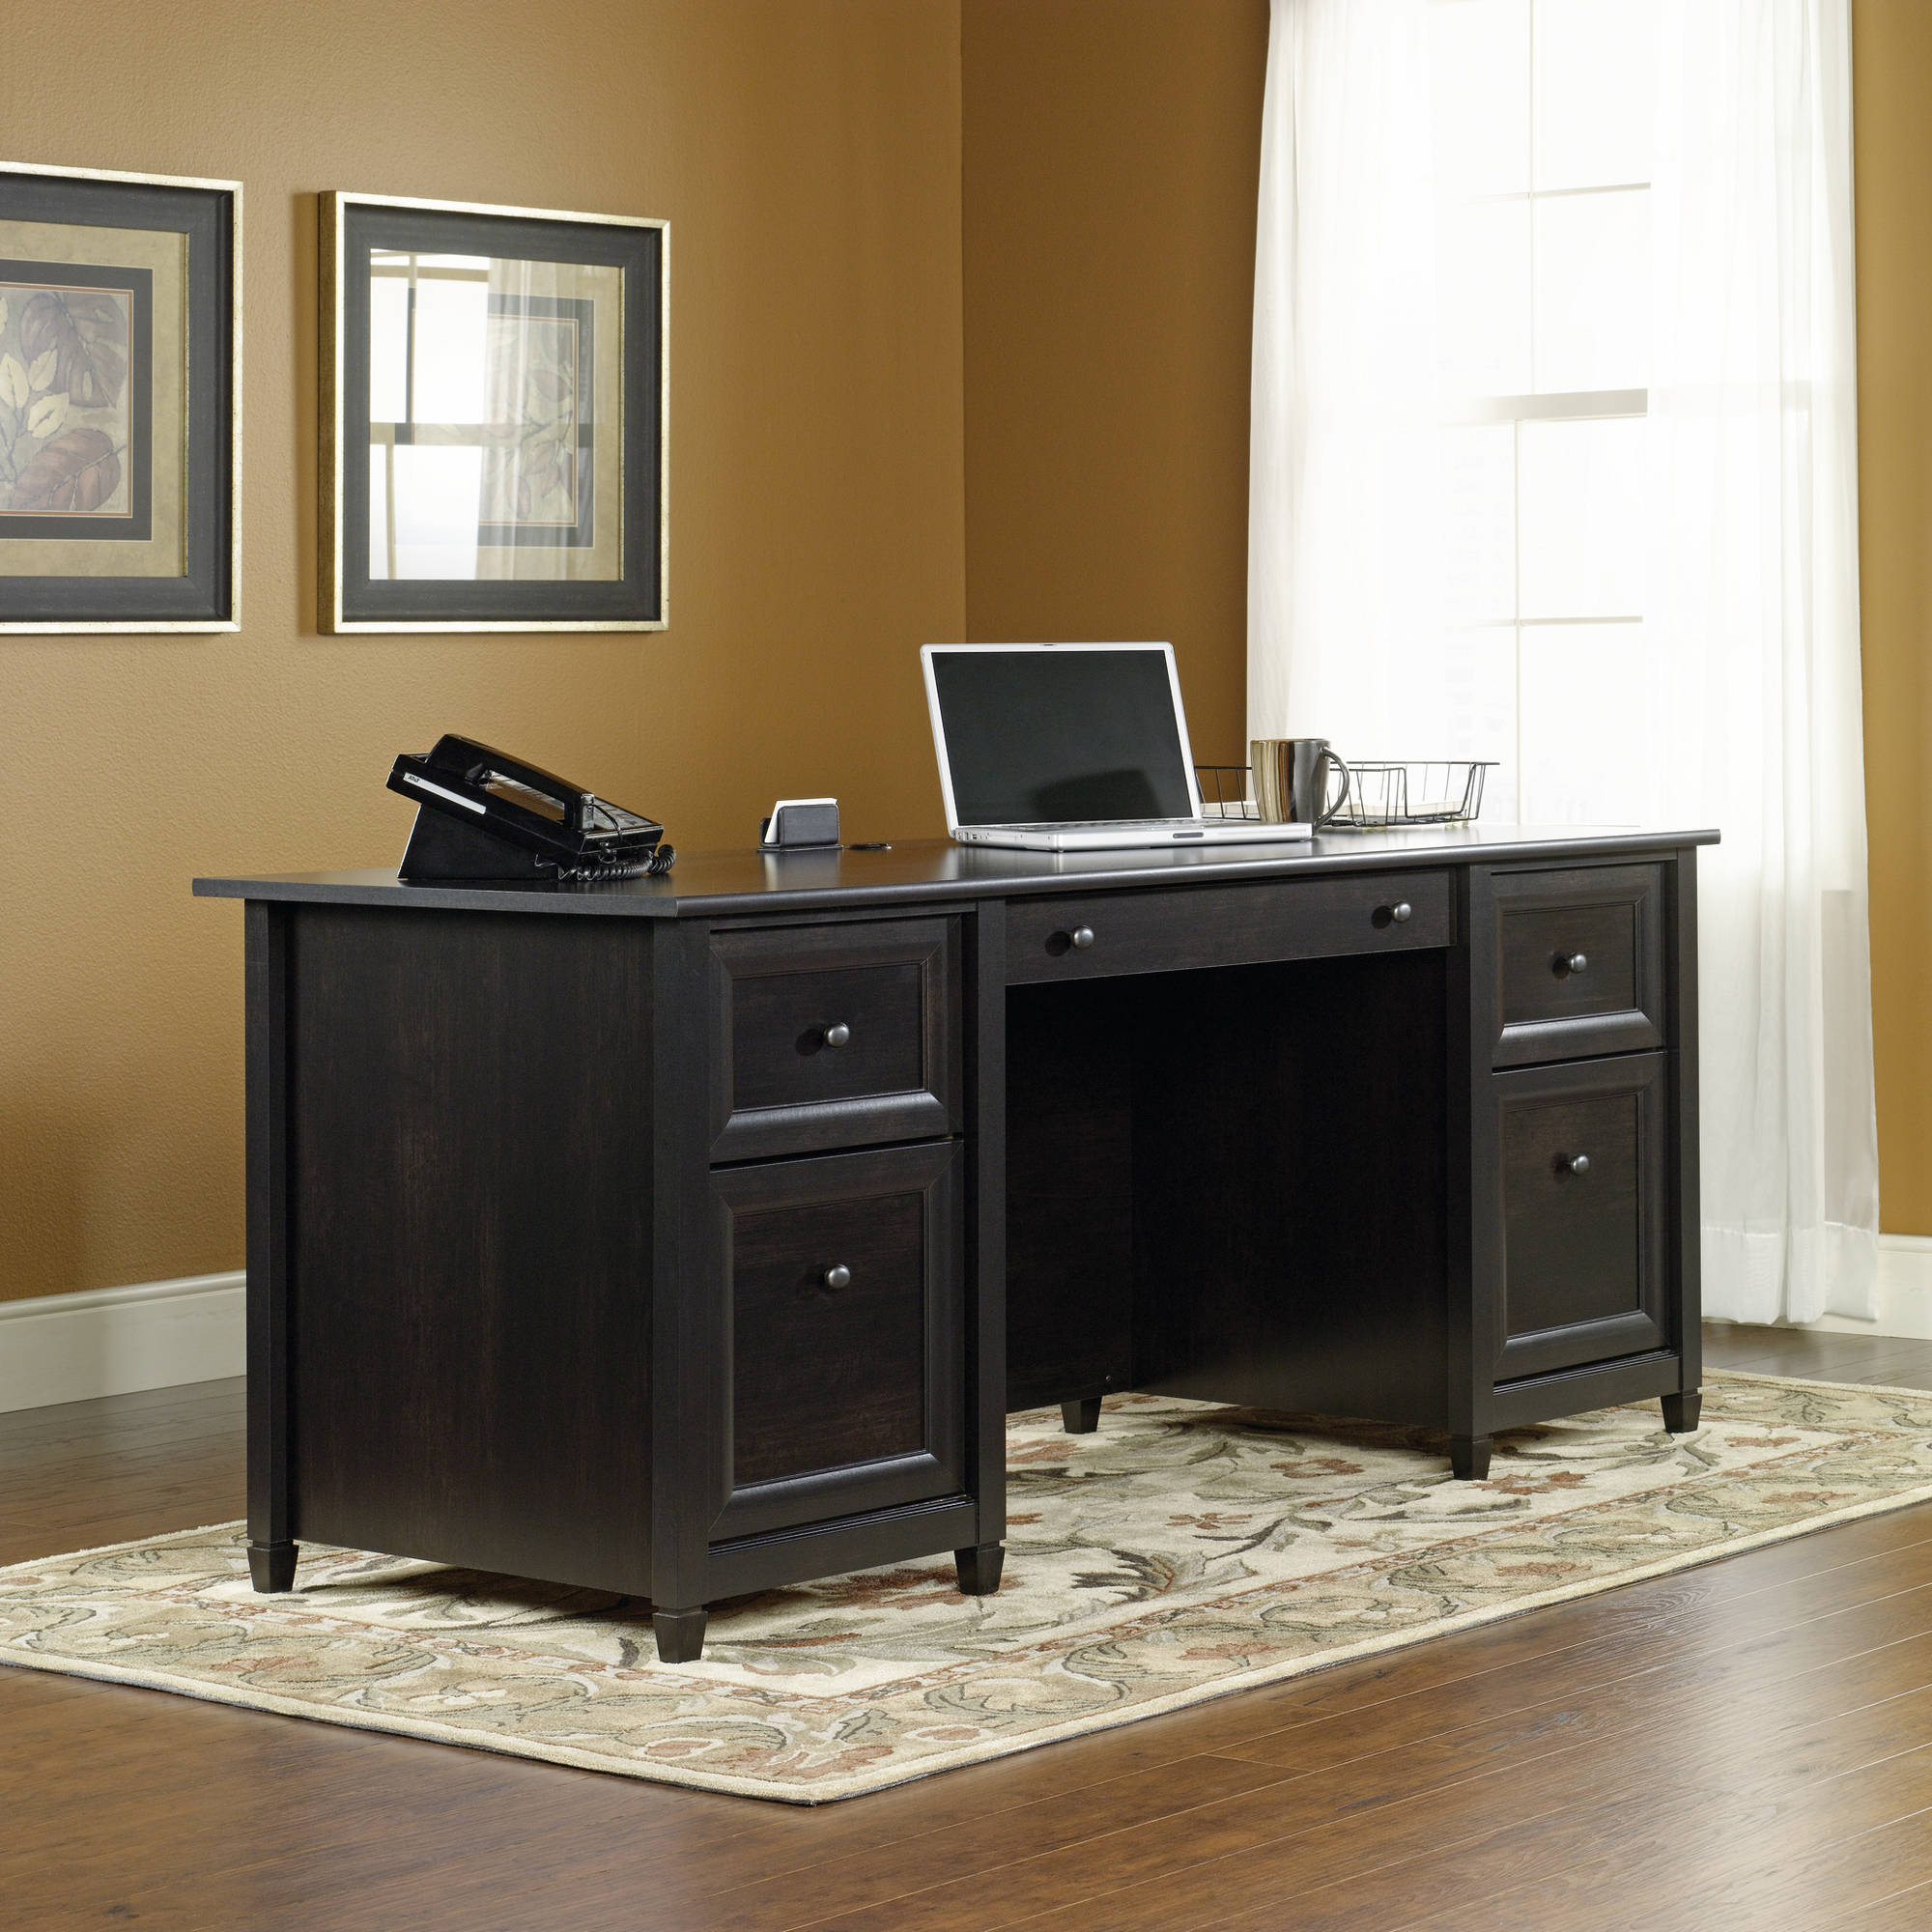 home office desks office furniture - every day low prices | walmart.com RPHRRFQ